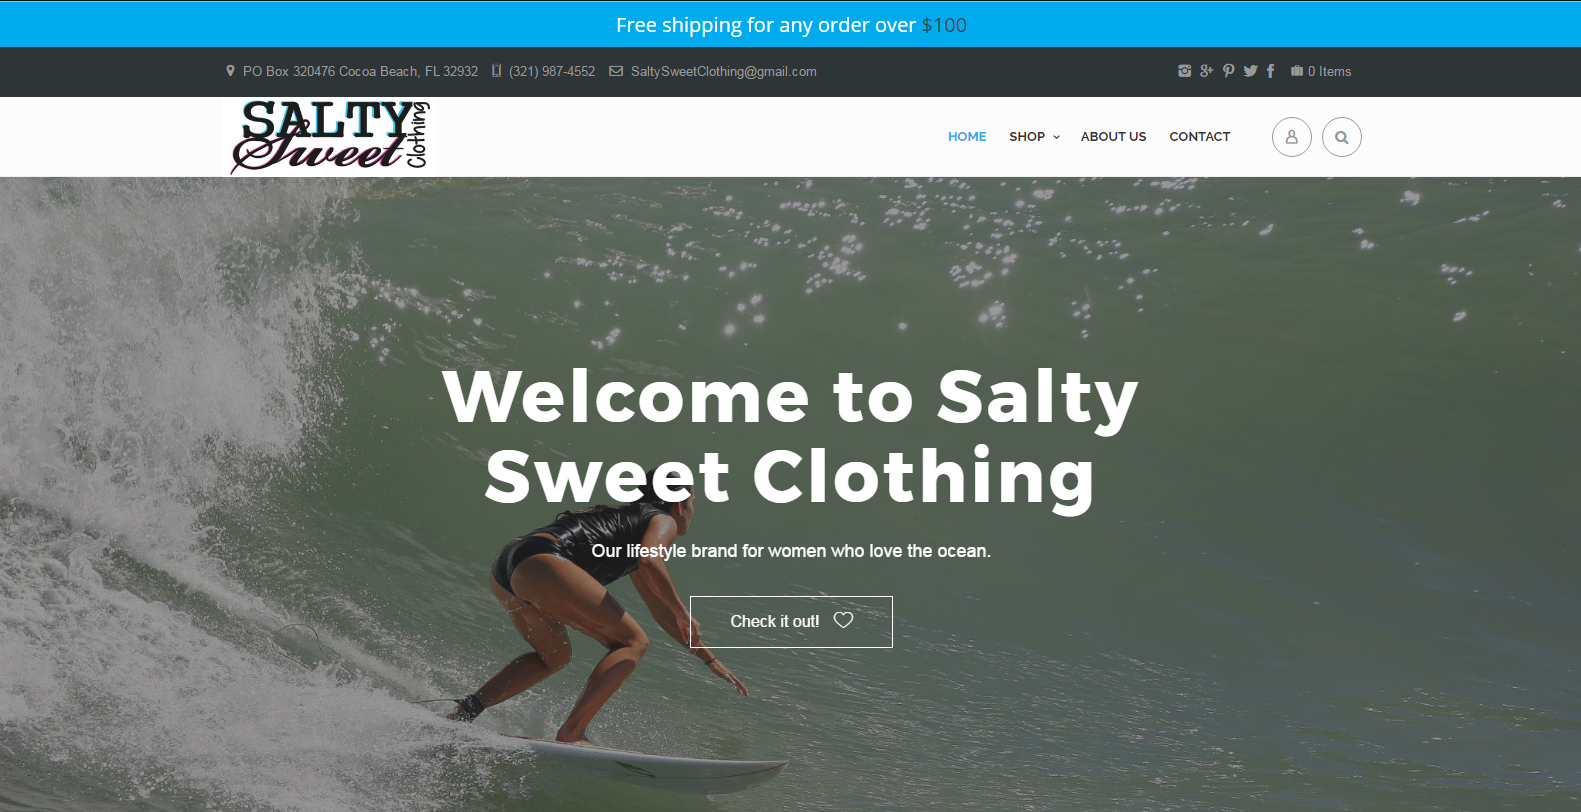 SS Clothing Web Design